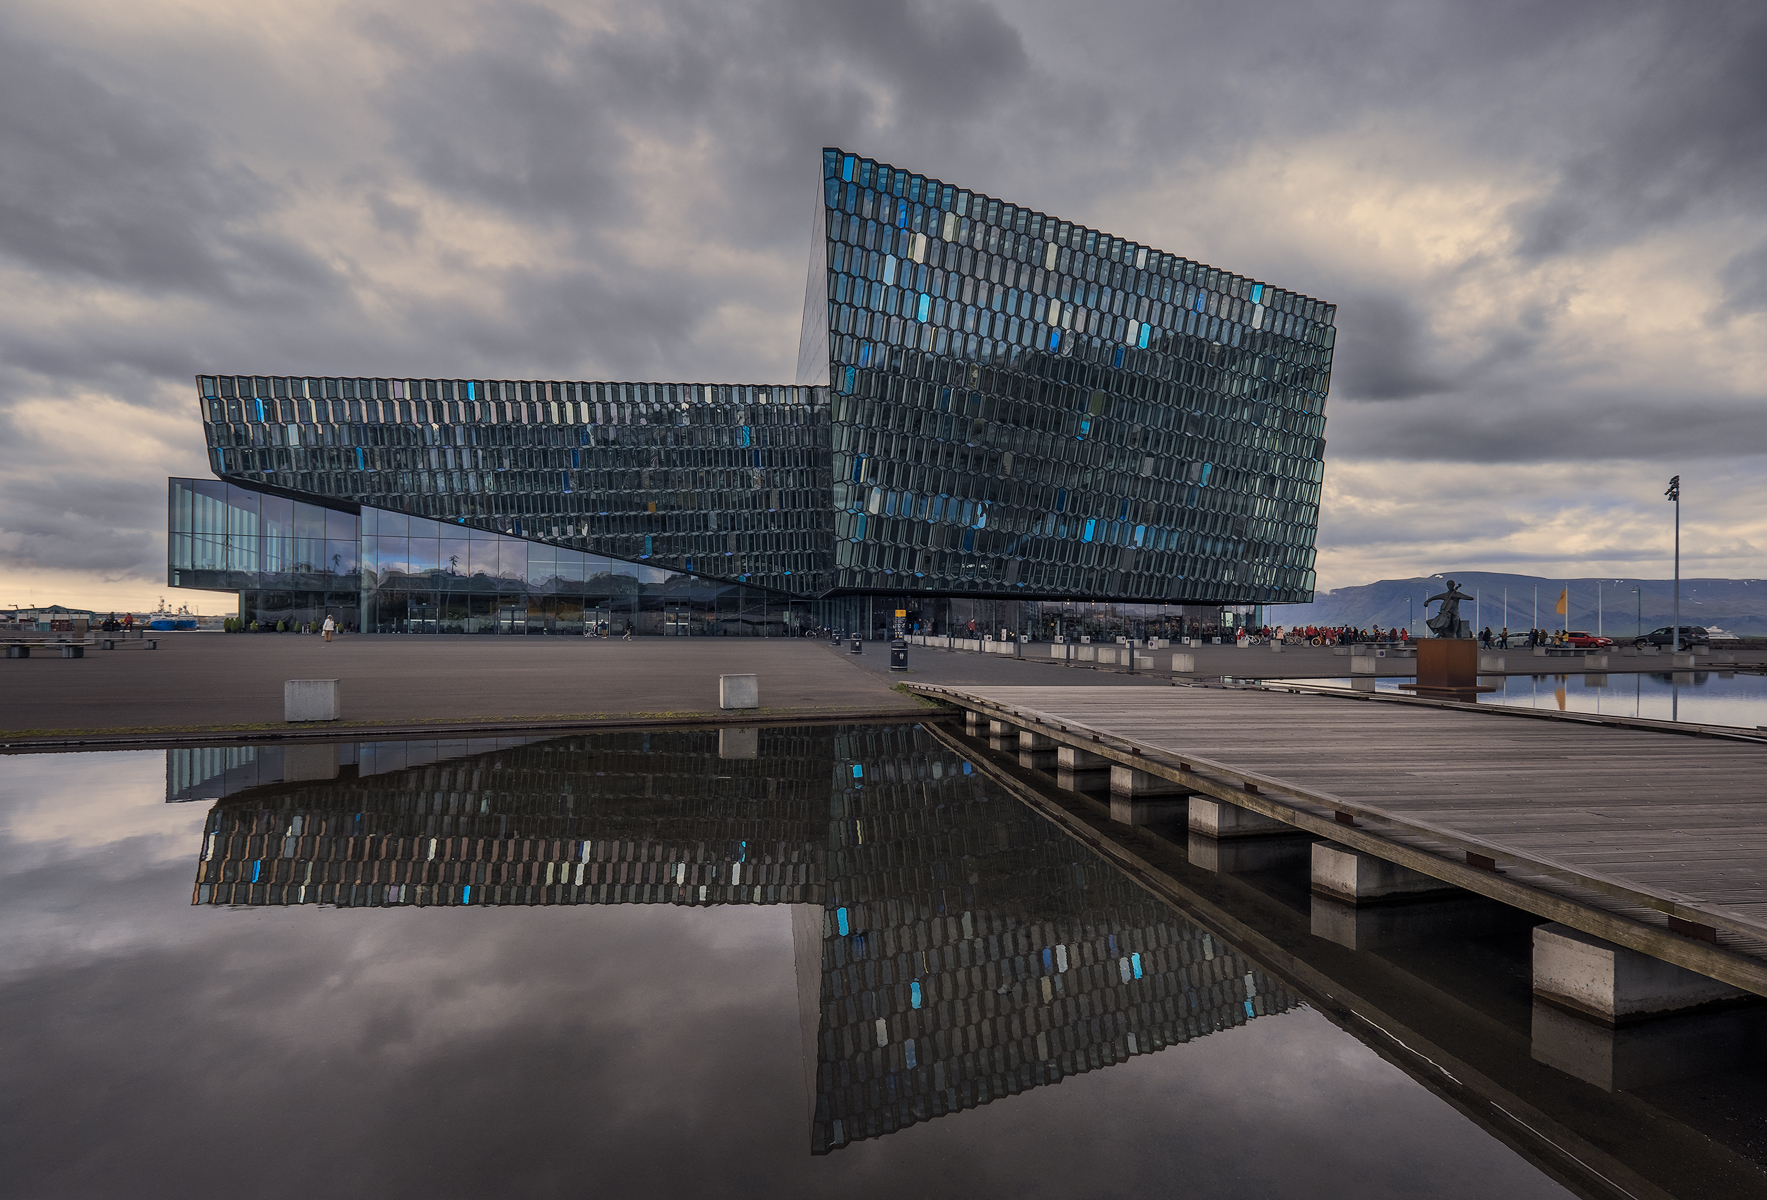 In this image the building reflects the somber blue tones of the late evening and cloudy sky.